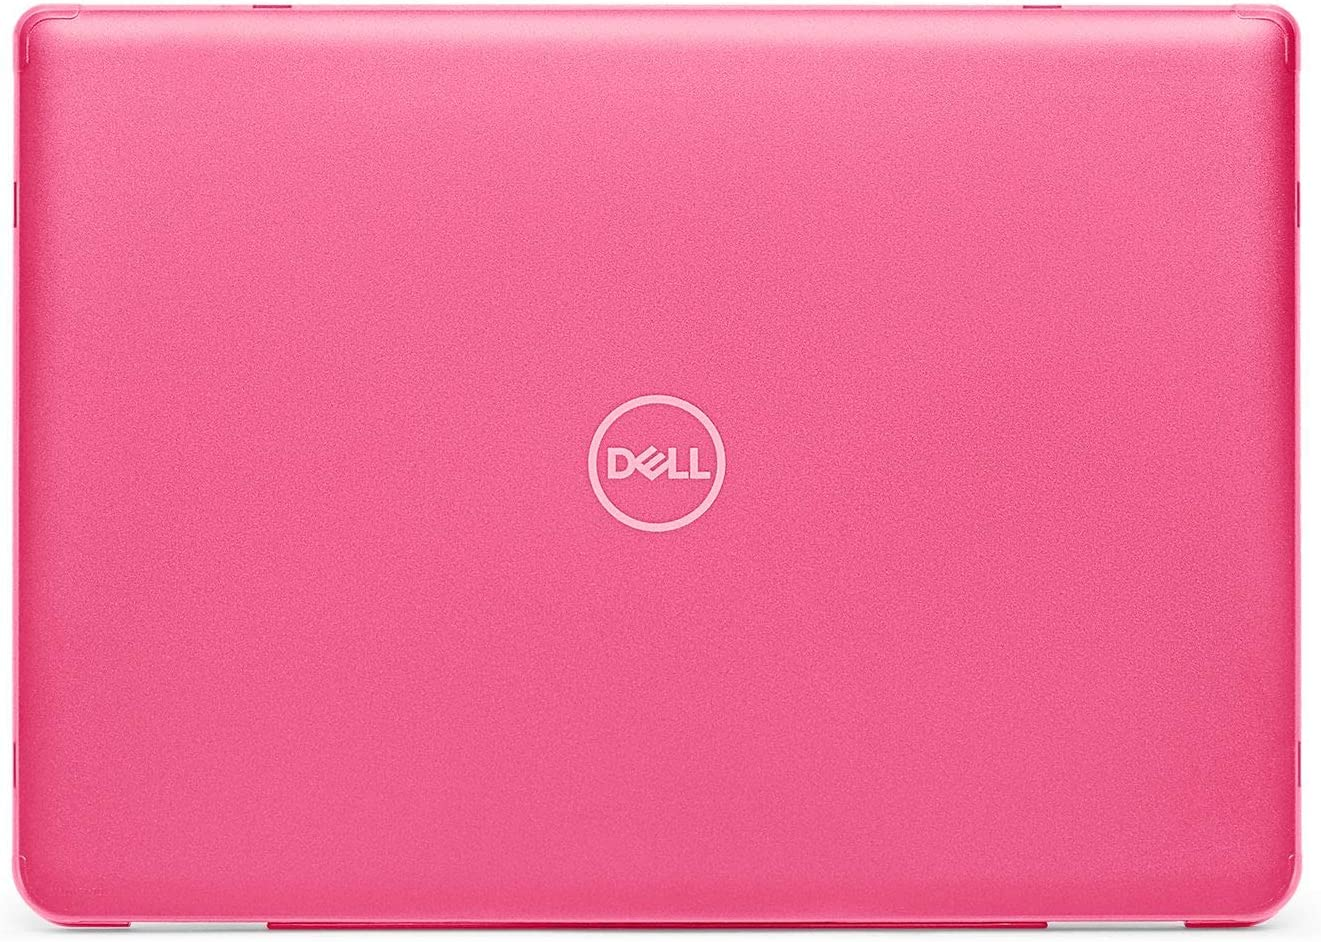 """mCover Hard Shell Case for New 2020 14"""" Dell Latitude 3410 Laptop Computers (NOT Compatible with Other Dell Latitude Computers) (Pink)"""